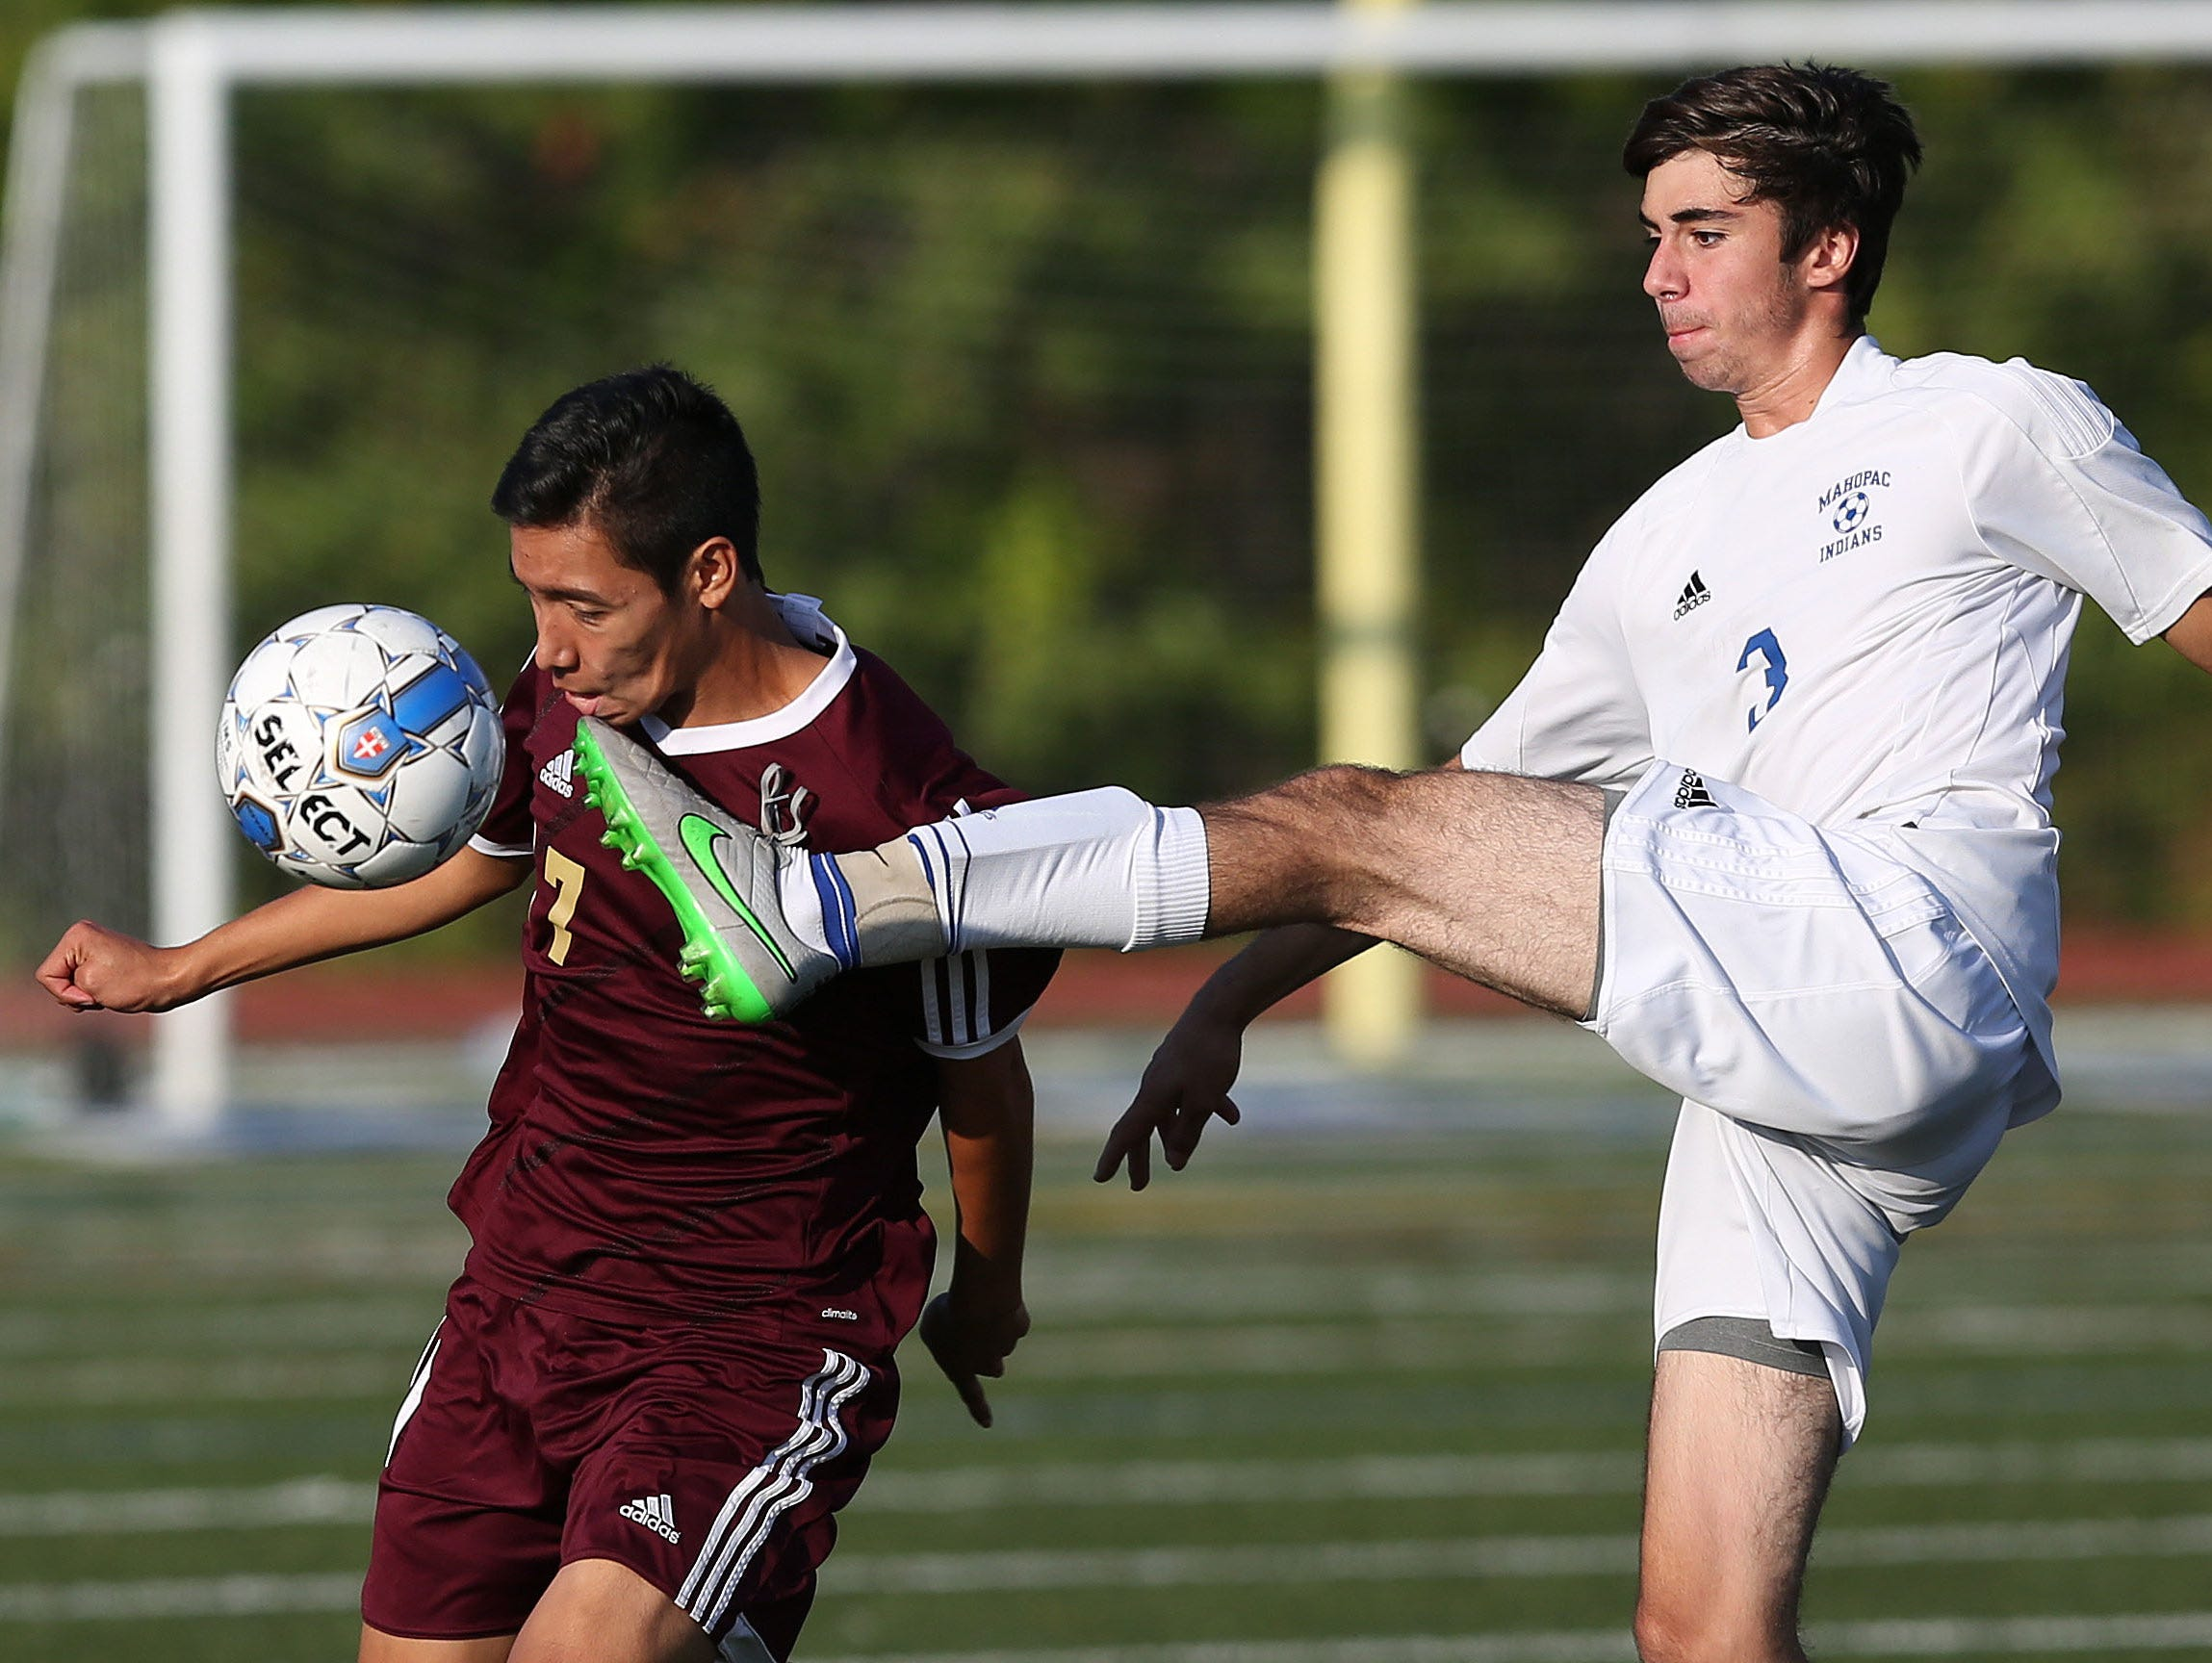 Arlington's Juan Lavariega (17) tries to control a pass as he takes a foot to the face from Mahopac's Paul Magnesio (3) during a boys soccer game at Mahopac High School Oct. 8, 2015. Arlington won the game.